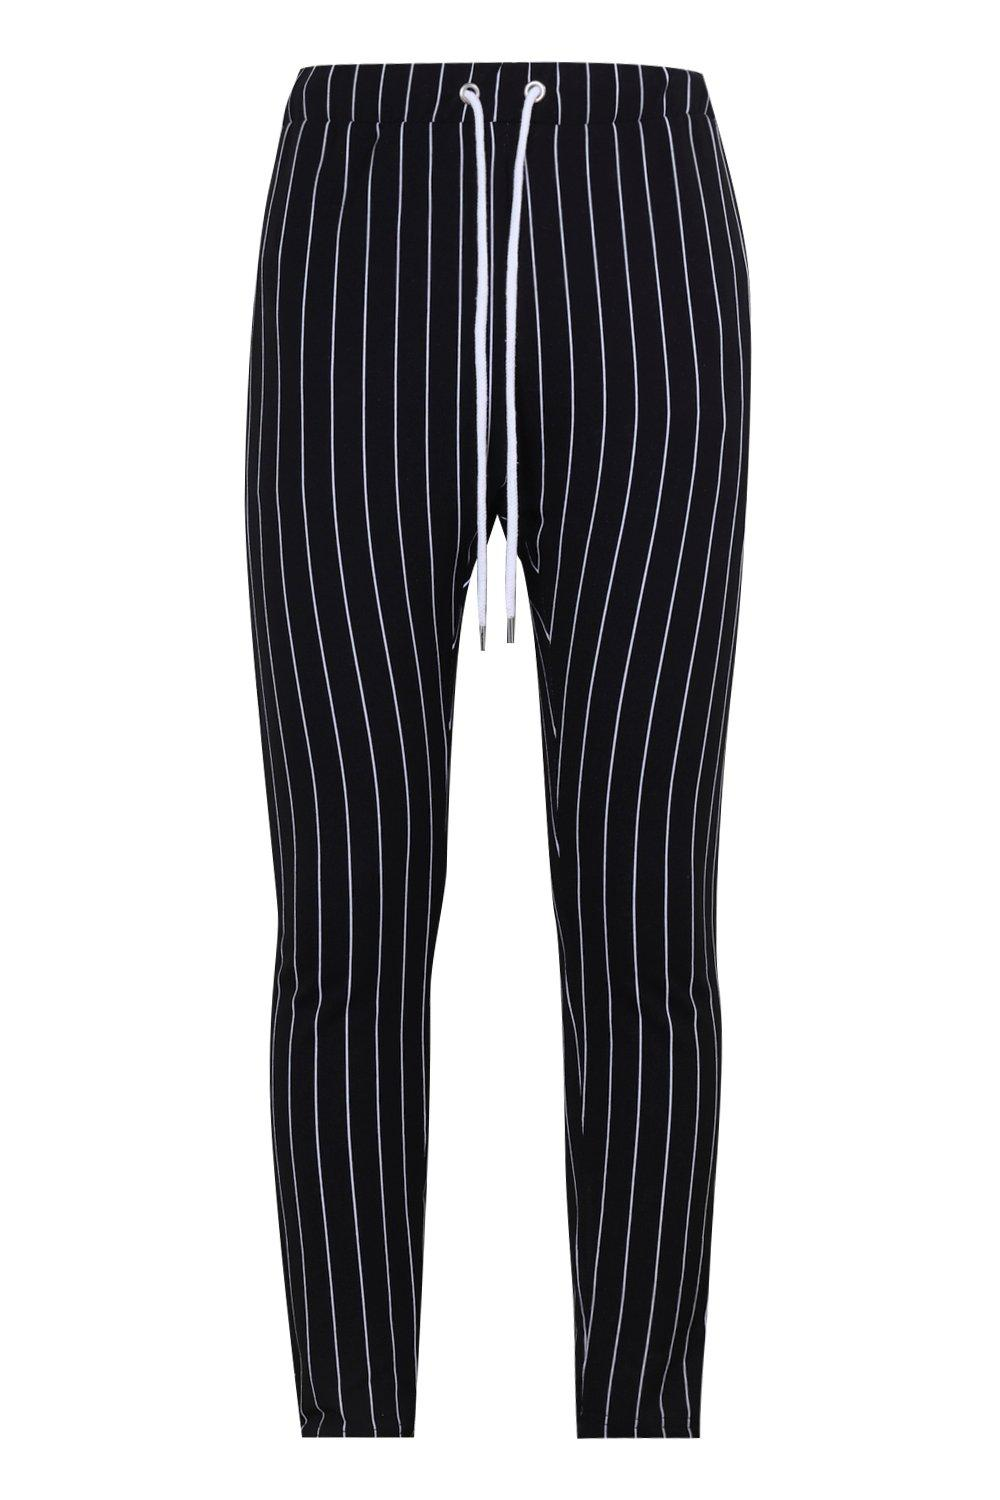 Skinny Striped Skinny Fit black Joggers Fit aSx07wq5